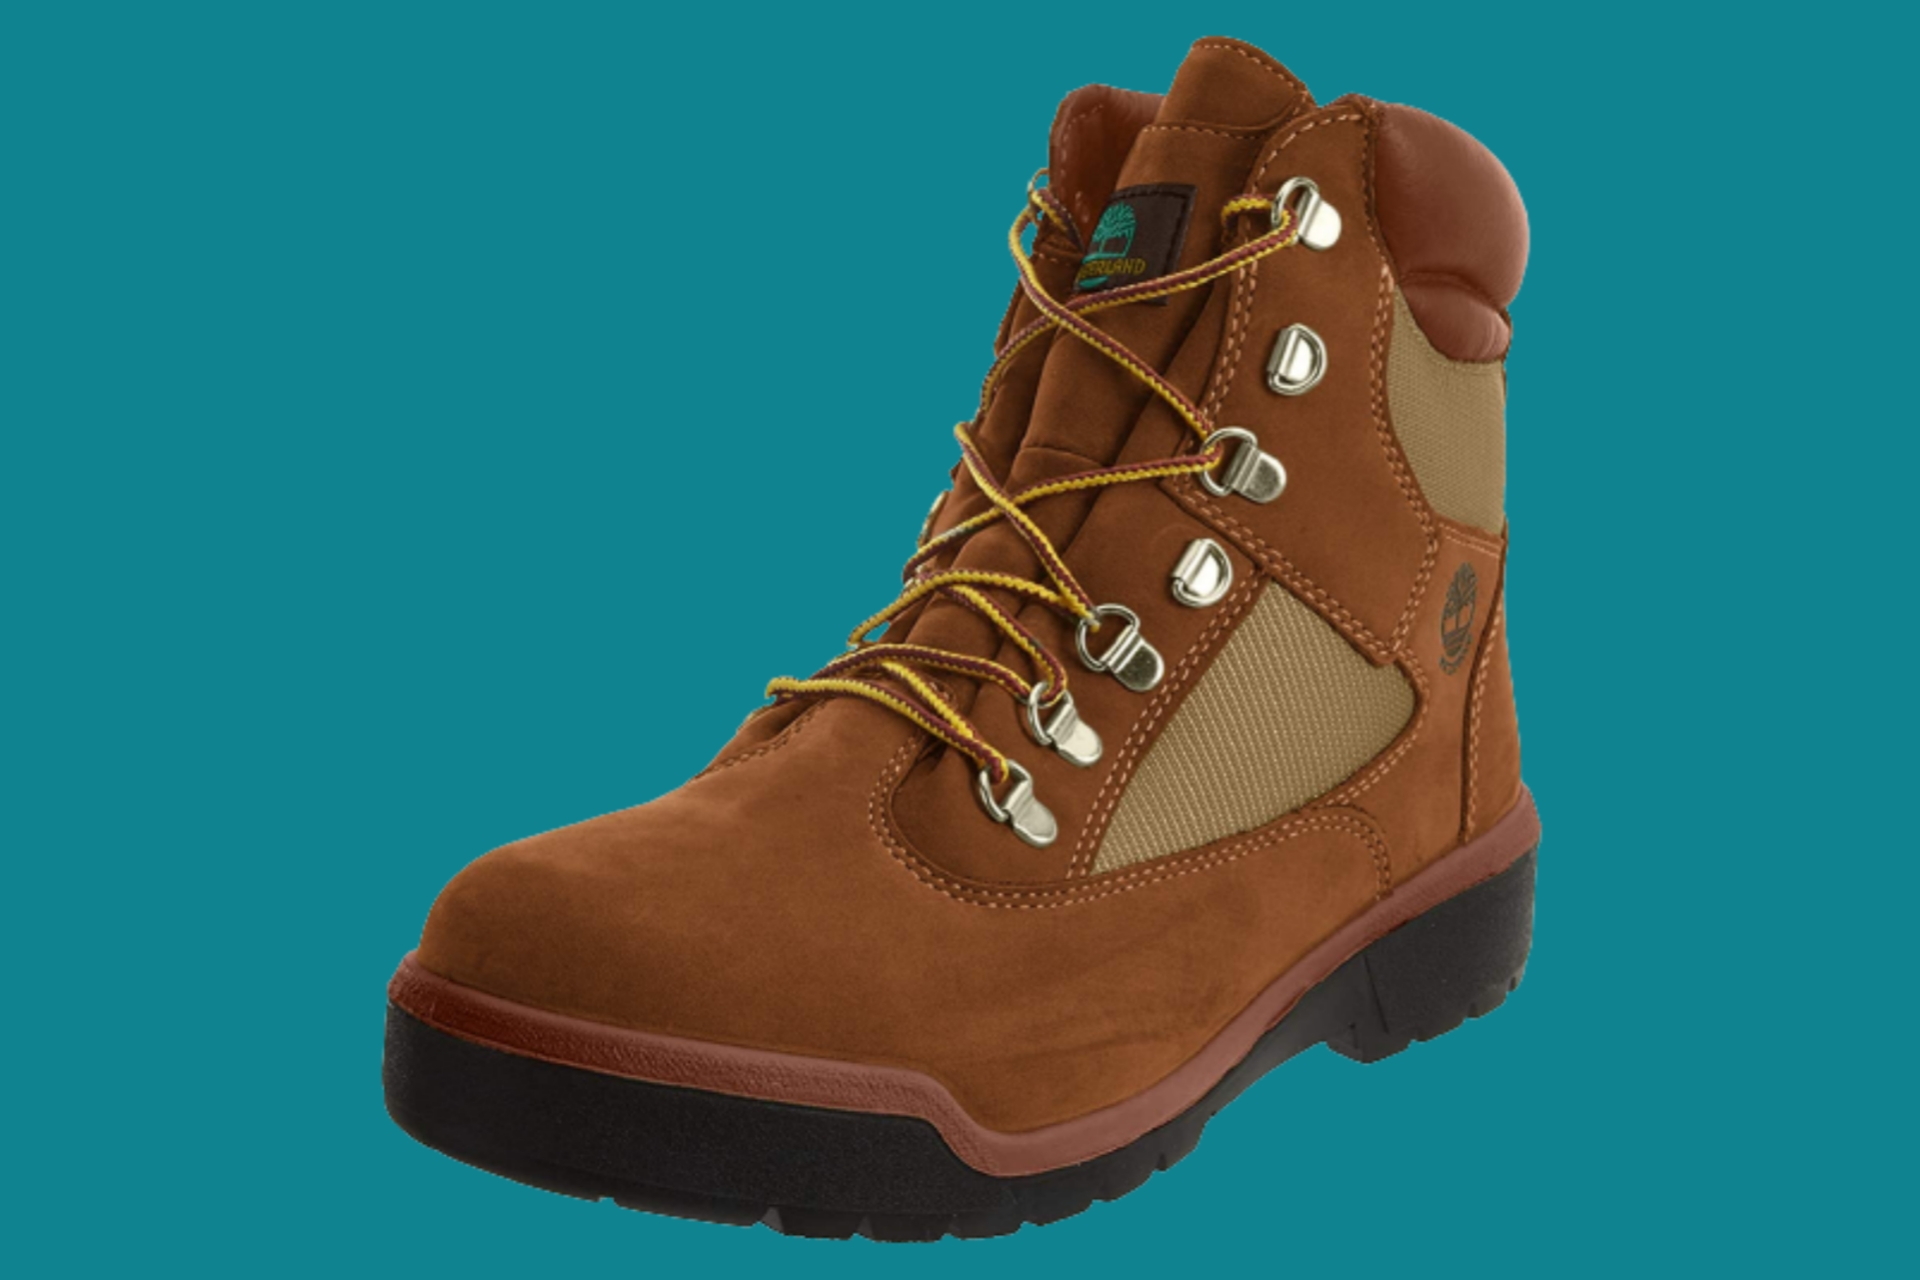 Best Timberland hiking boots